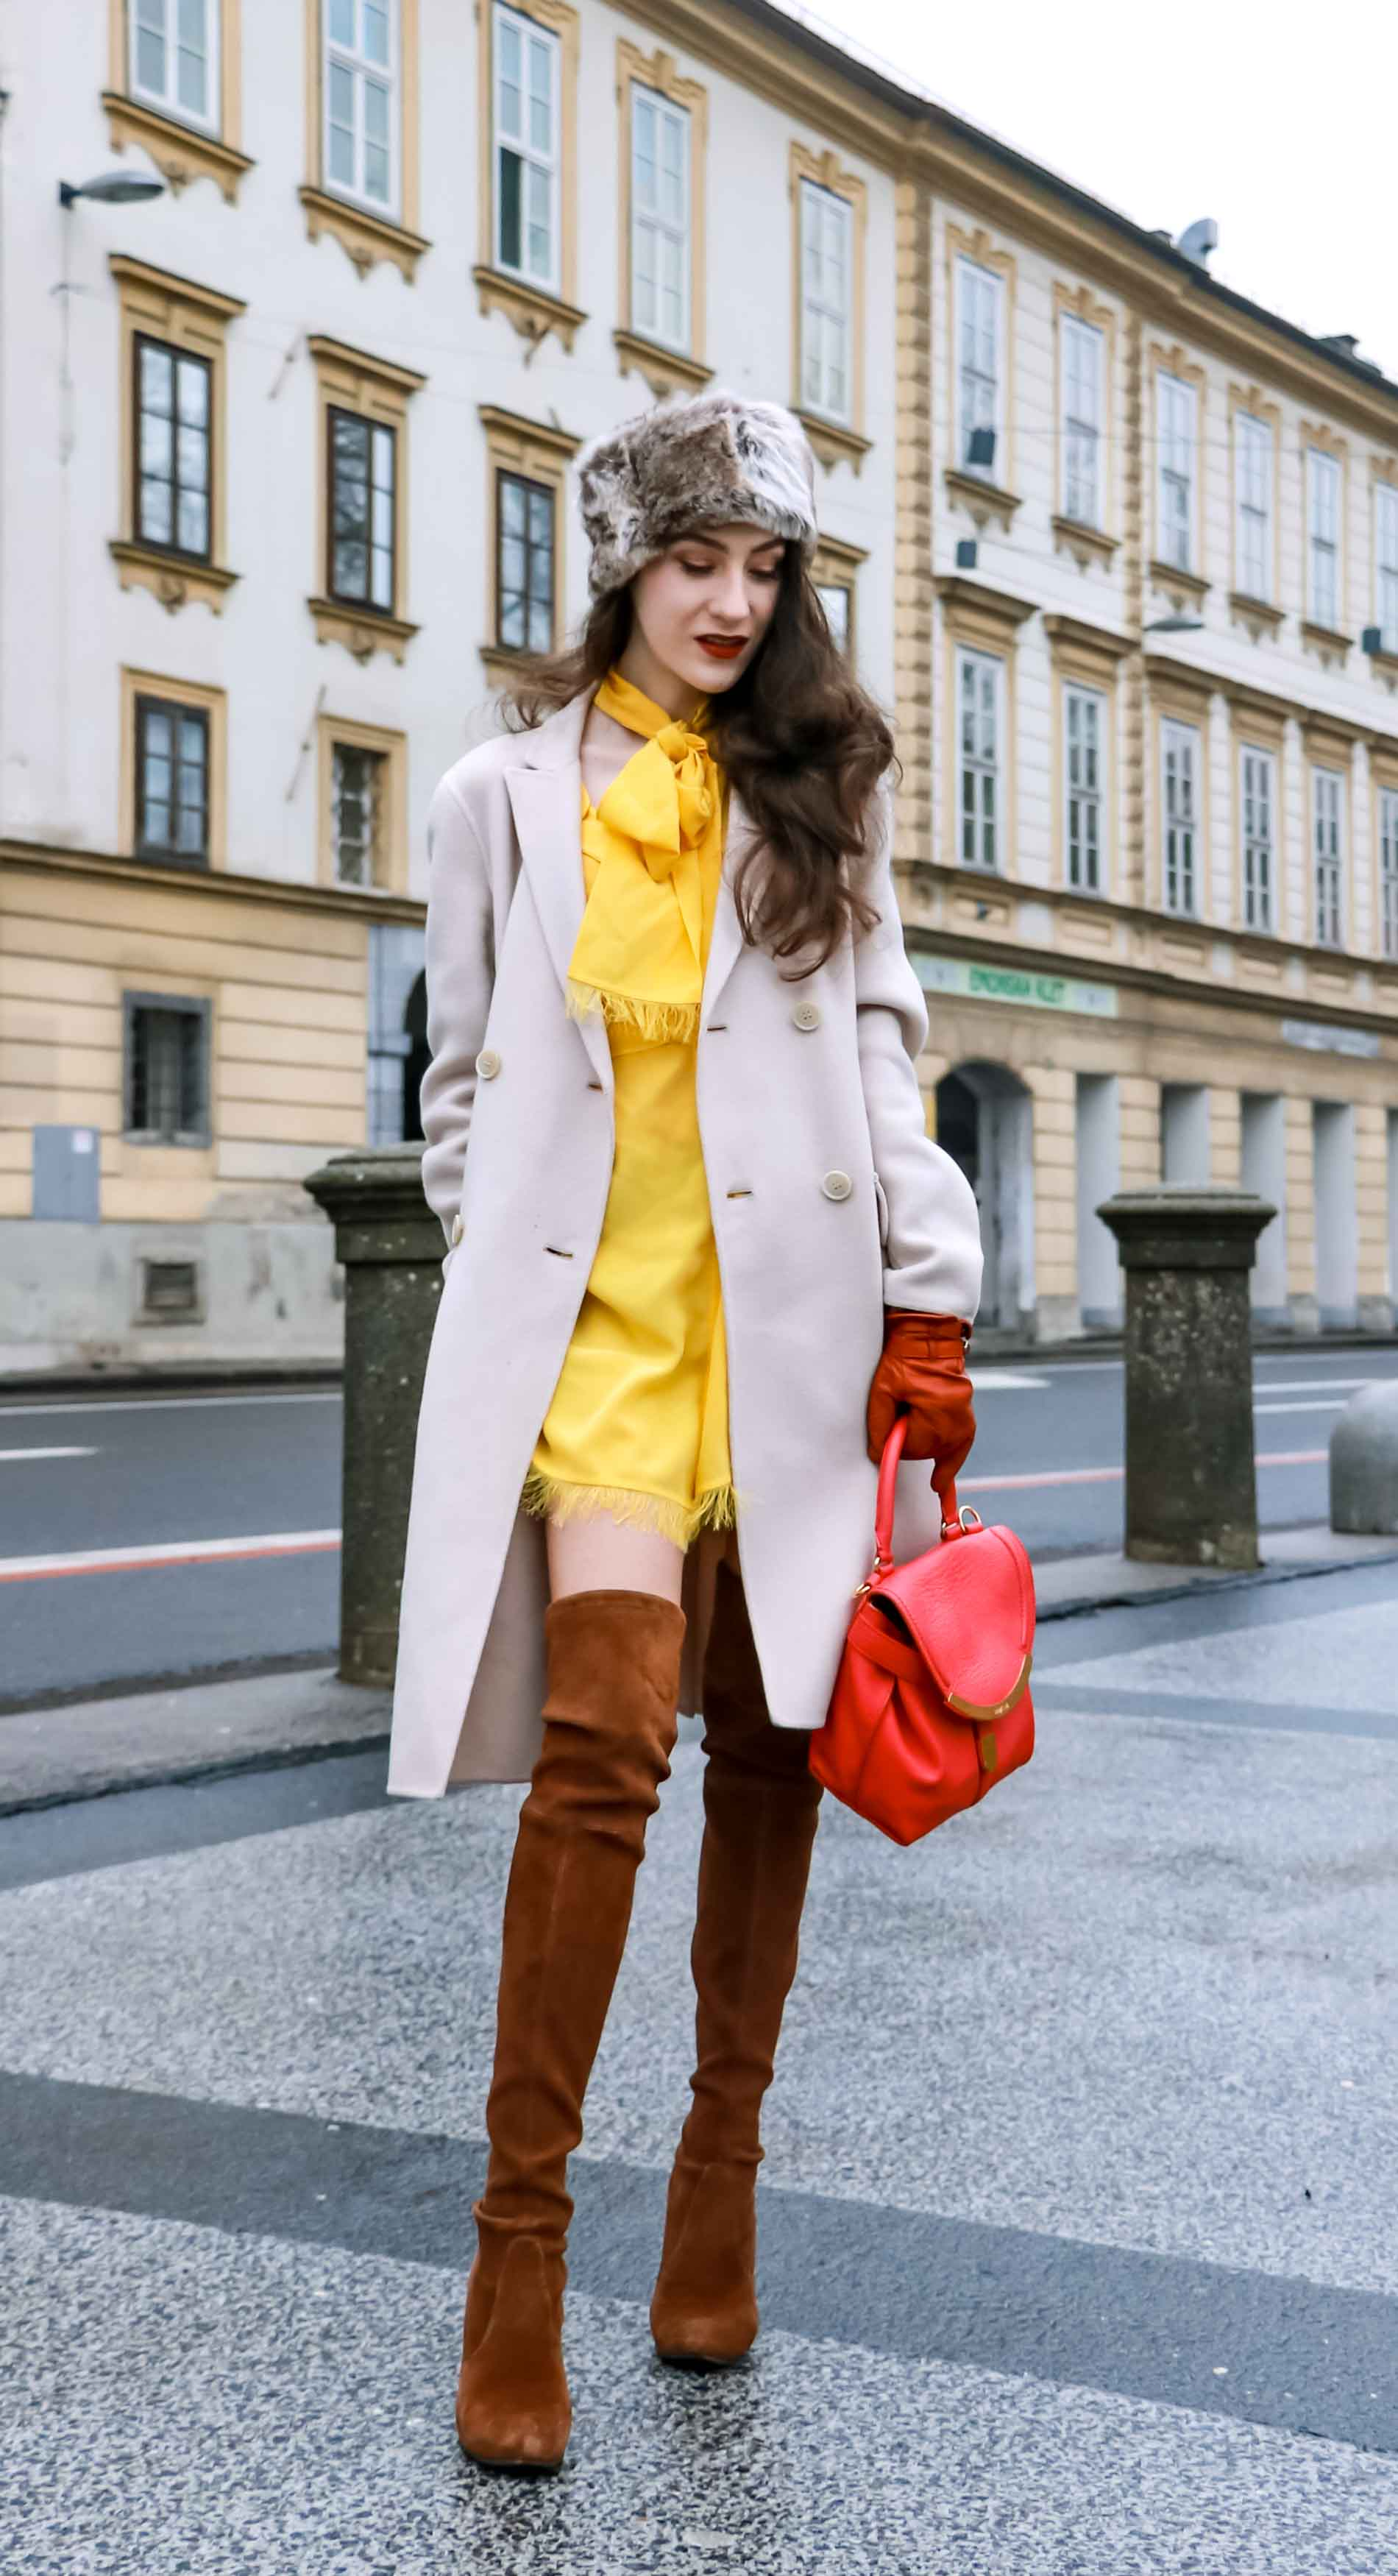 Fashion Blogger Veronika Lipar of Brunette from Wall Street wearing the IT dress of spring summer 2018, the yellow dress from Escada, off-white, pastel double-breasted coat from Weekend Maxmara, pink top handle bag from See by Chloé, brown Stuart Weitzman over the knee boots, and faux fur headband in winter